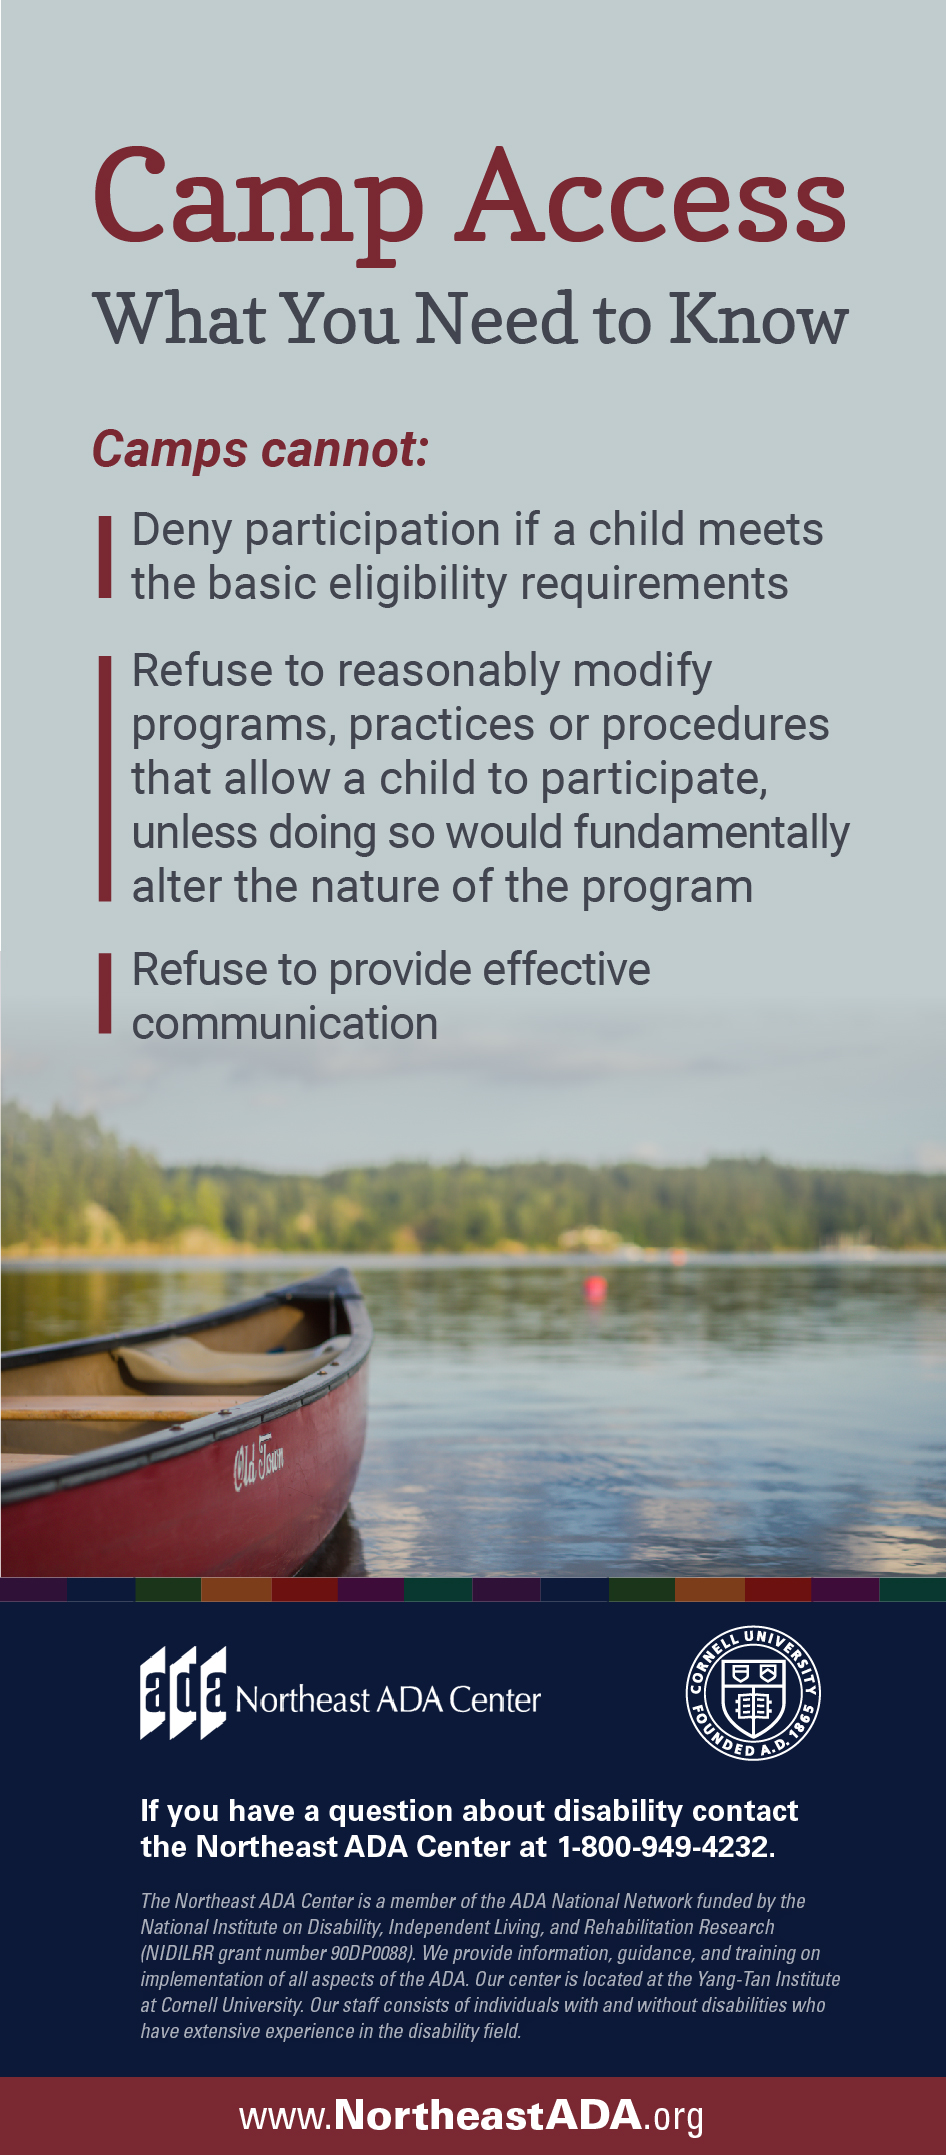 Infographic titled 'Camp Access' featuring a boat on a lake.  Camp Access: What You Need to Know Camps cannot: Deny participation if your child meets the basic eligibility requirements. Refuse to reasonably modify programs, practices or procedures that permit your child to participate, unless doing so would fundamentally alter the nature of the program. Refuse to provide effective communication.  If you have any questions about the Americans with Disabilities Act, contact us at 1-800-949-4232